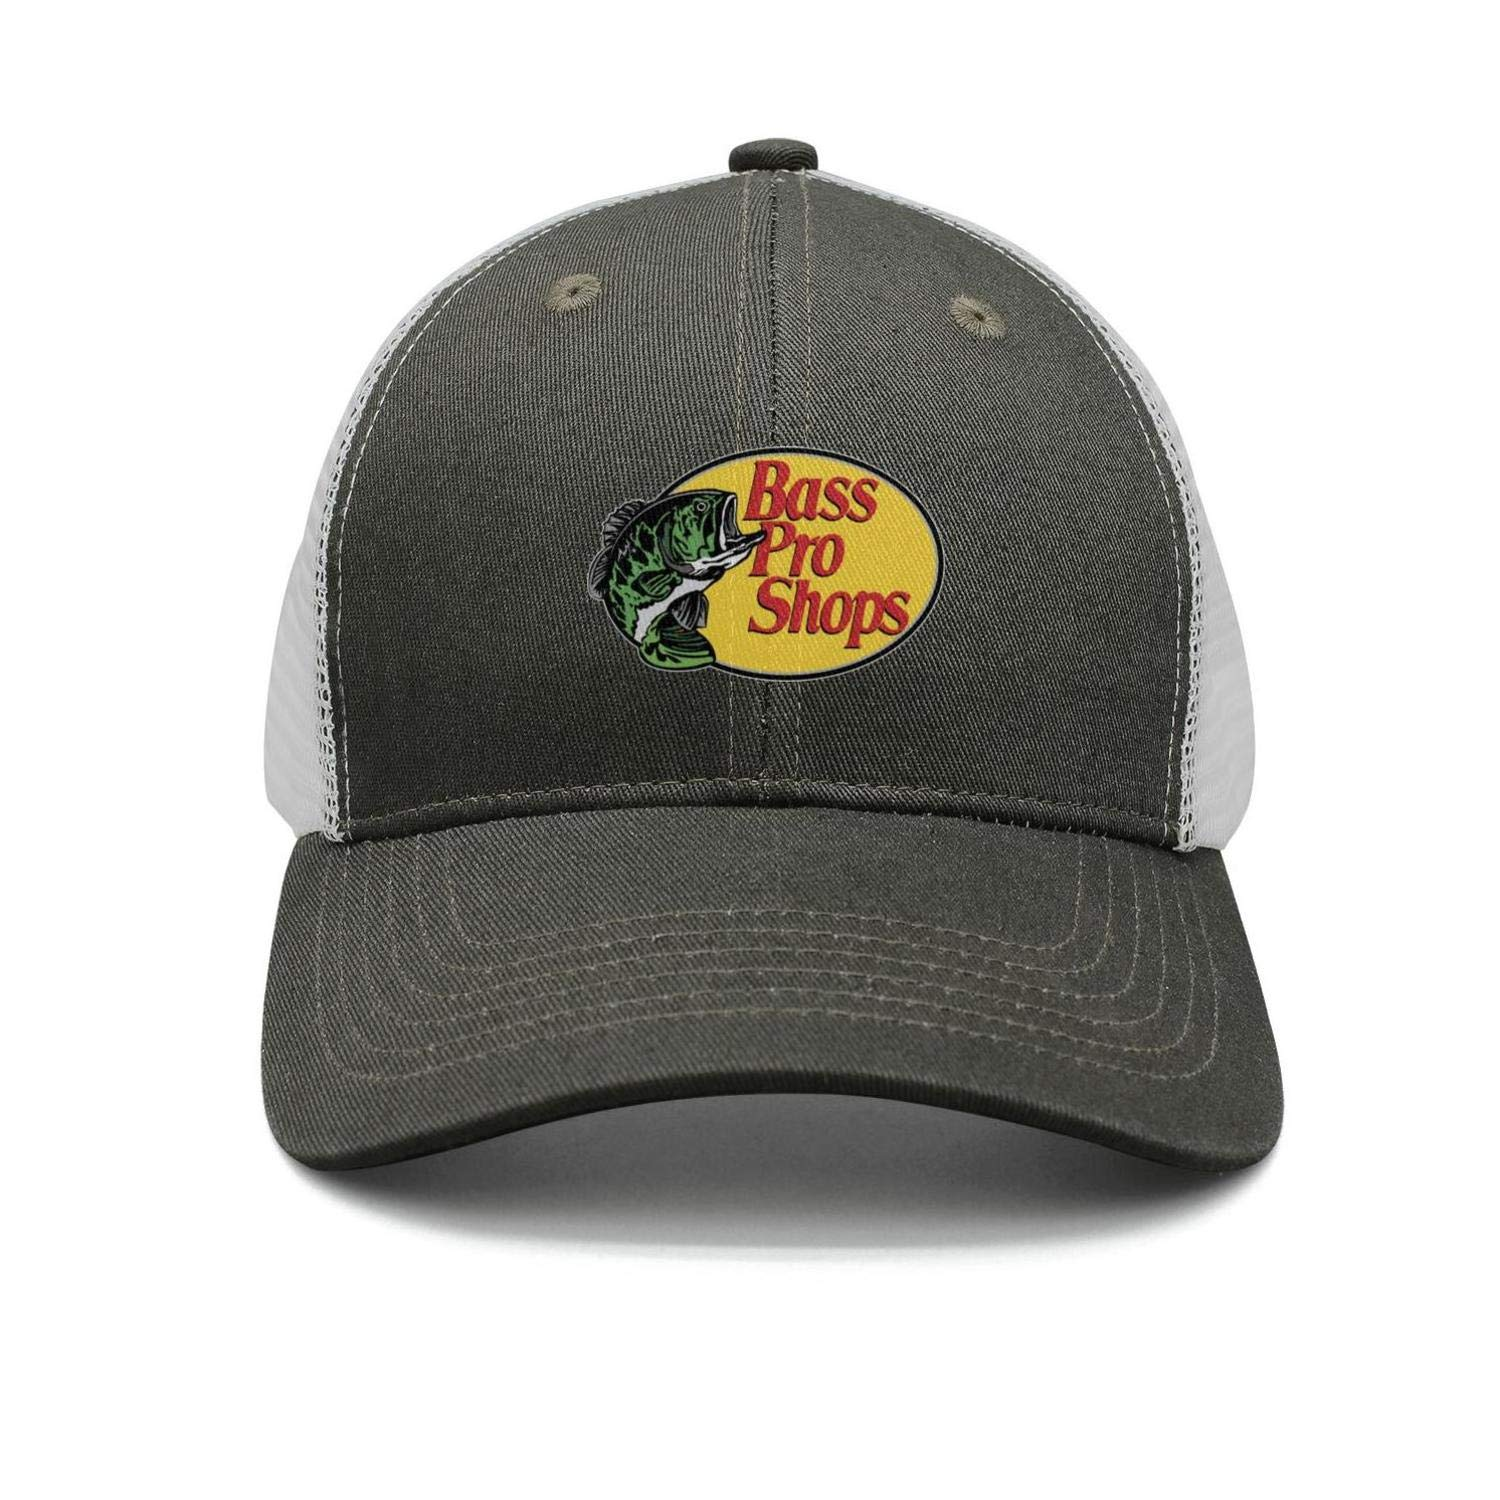 Bass-Pro-Shops-Logo- Snapback Cap Trucker All Cotton Relaxed